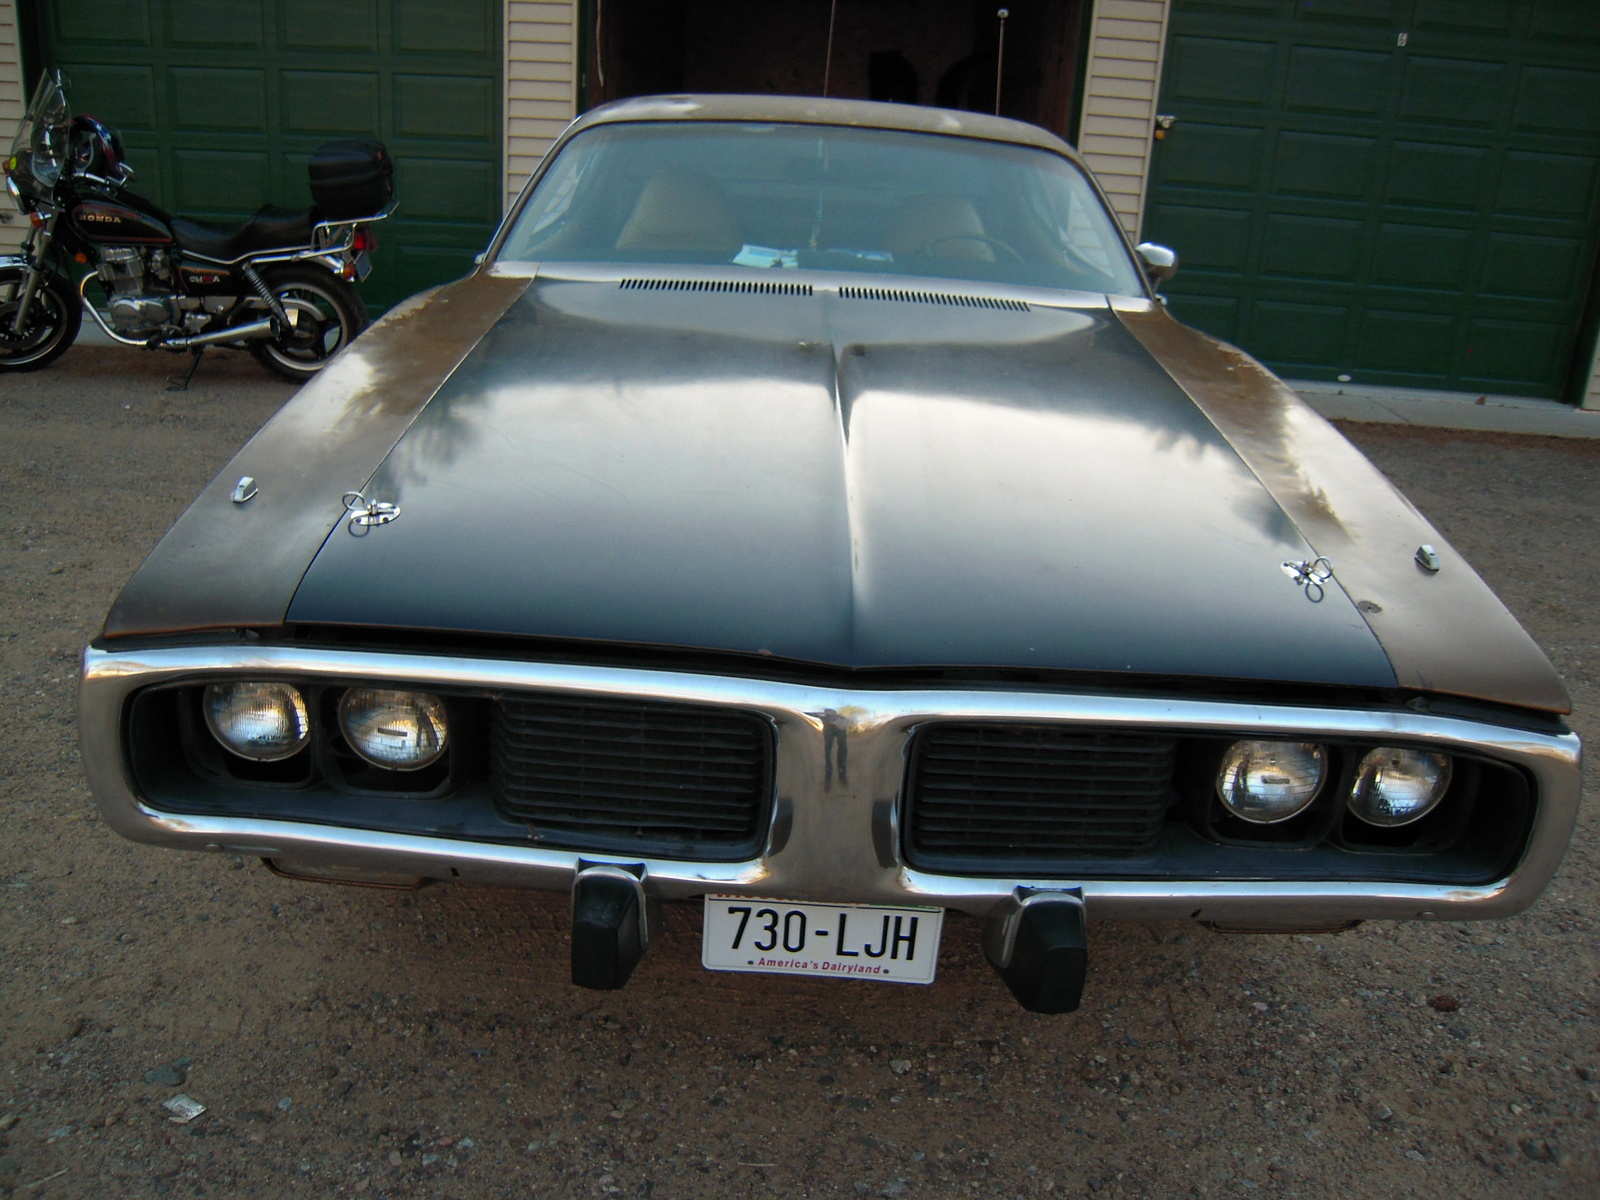 1973 Dodge Charger picture, exterior